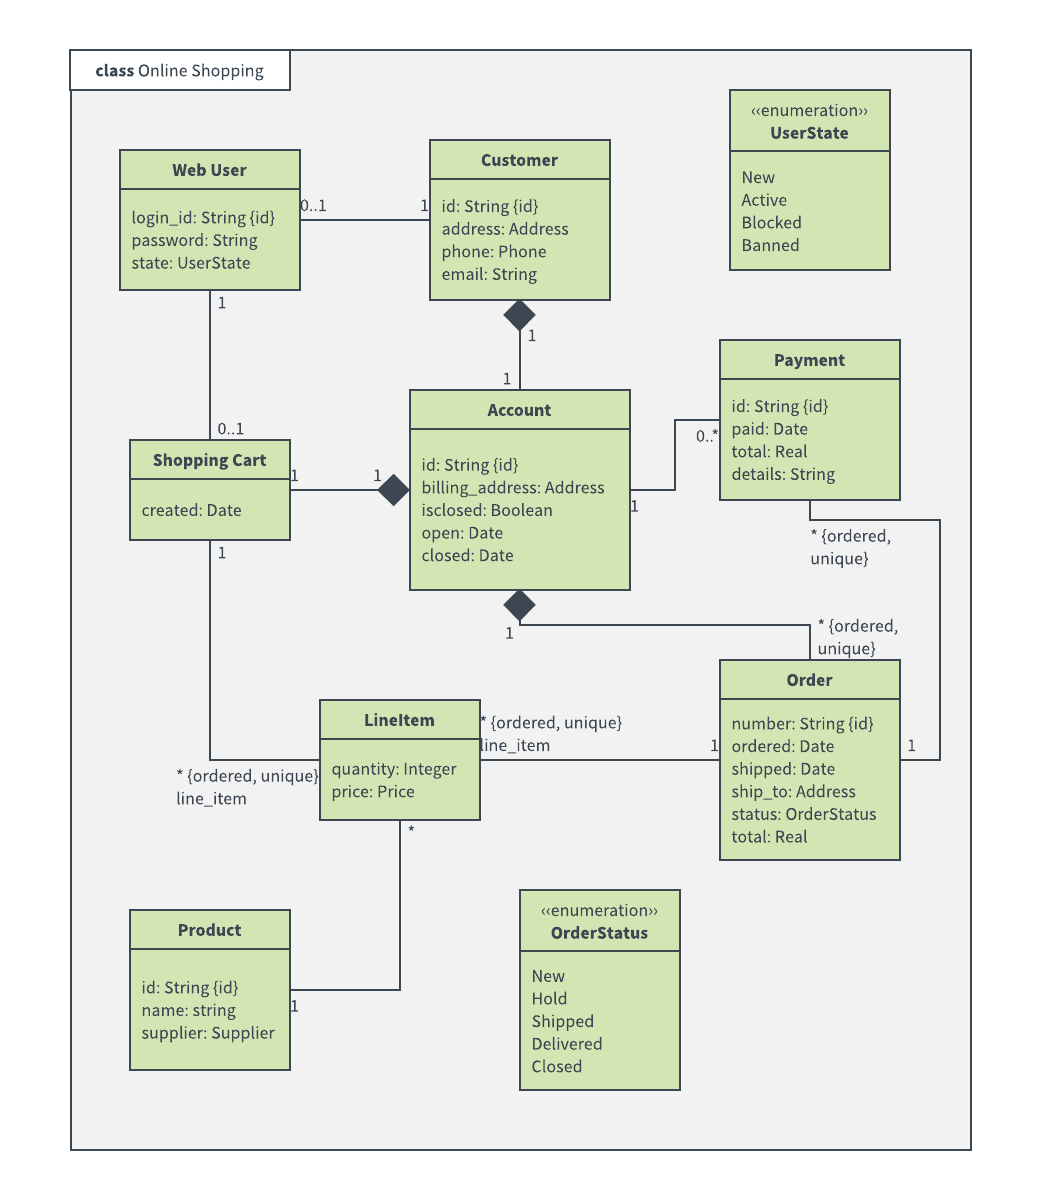 Uml diagram templates and examples lucidchart blog online shopping class diagram example uml ccuart Choice Image